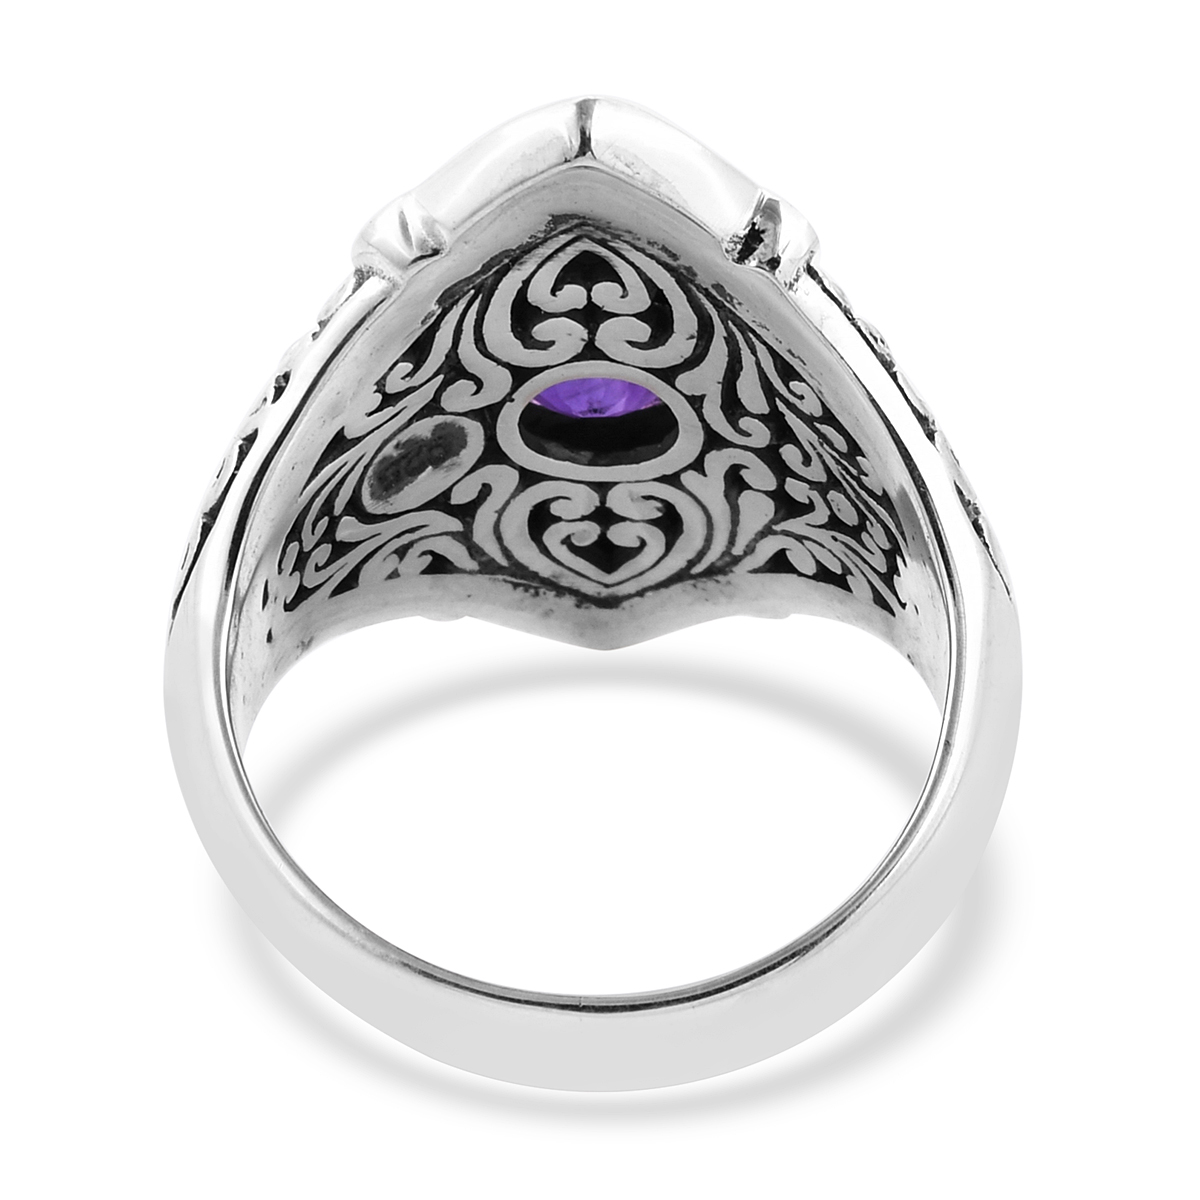 Bali Legacy Amethyst Ring in Sterling Silver (Size 8.0) 1.83 ctw